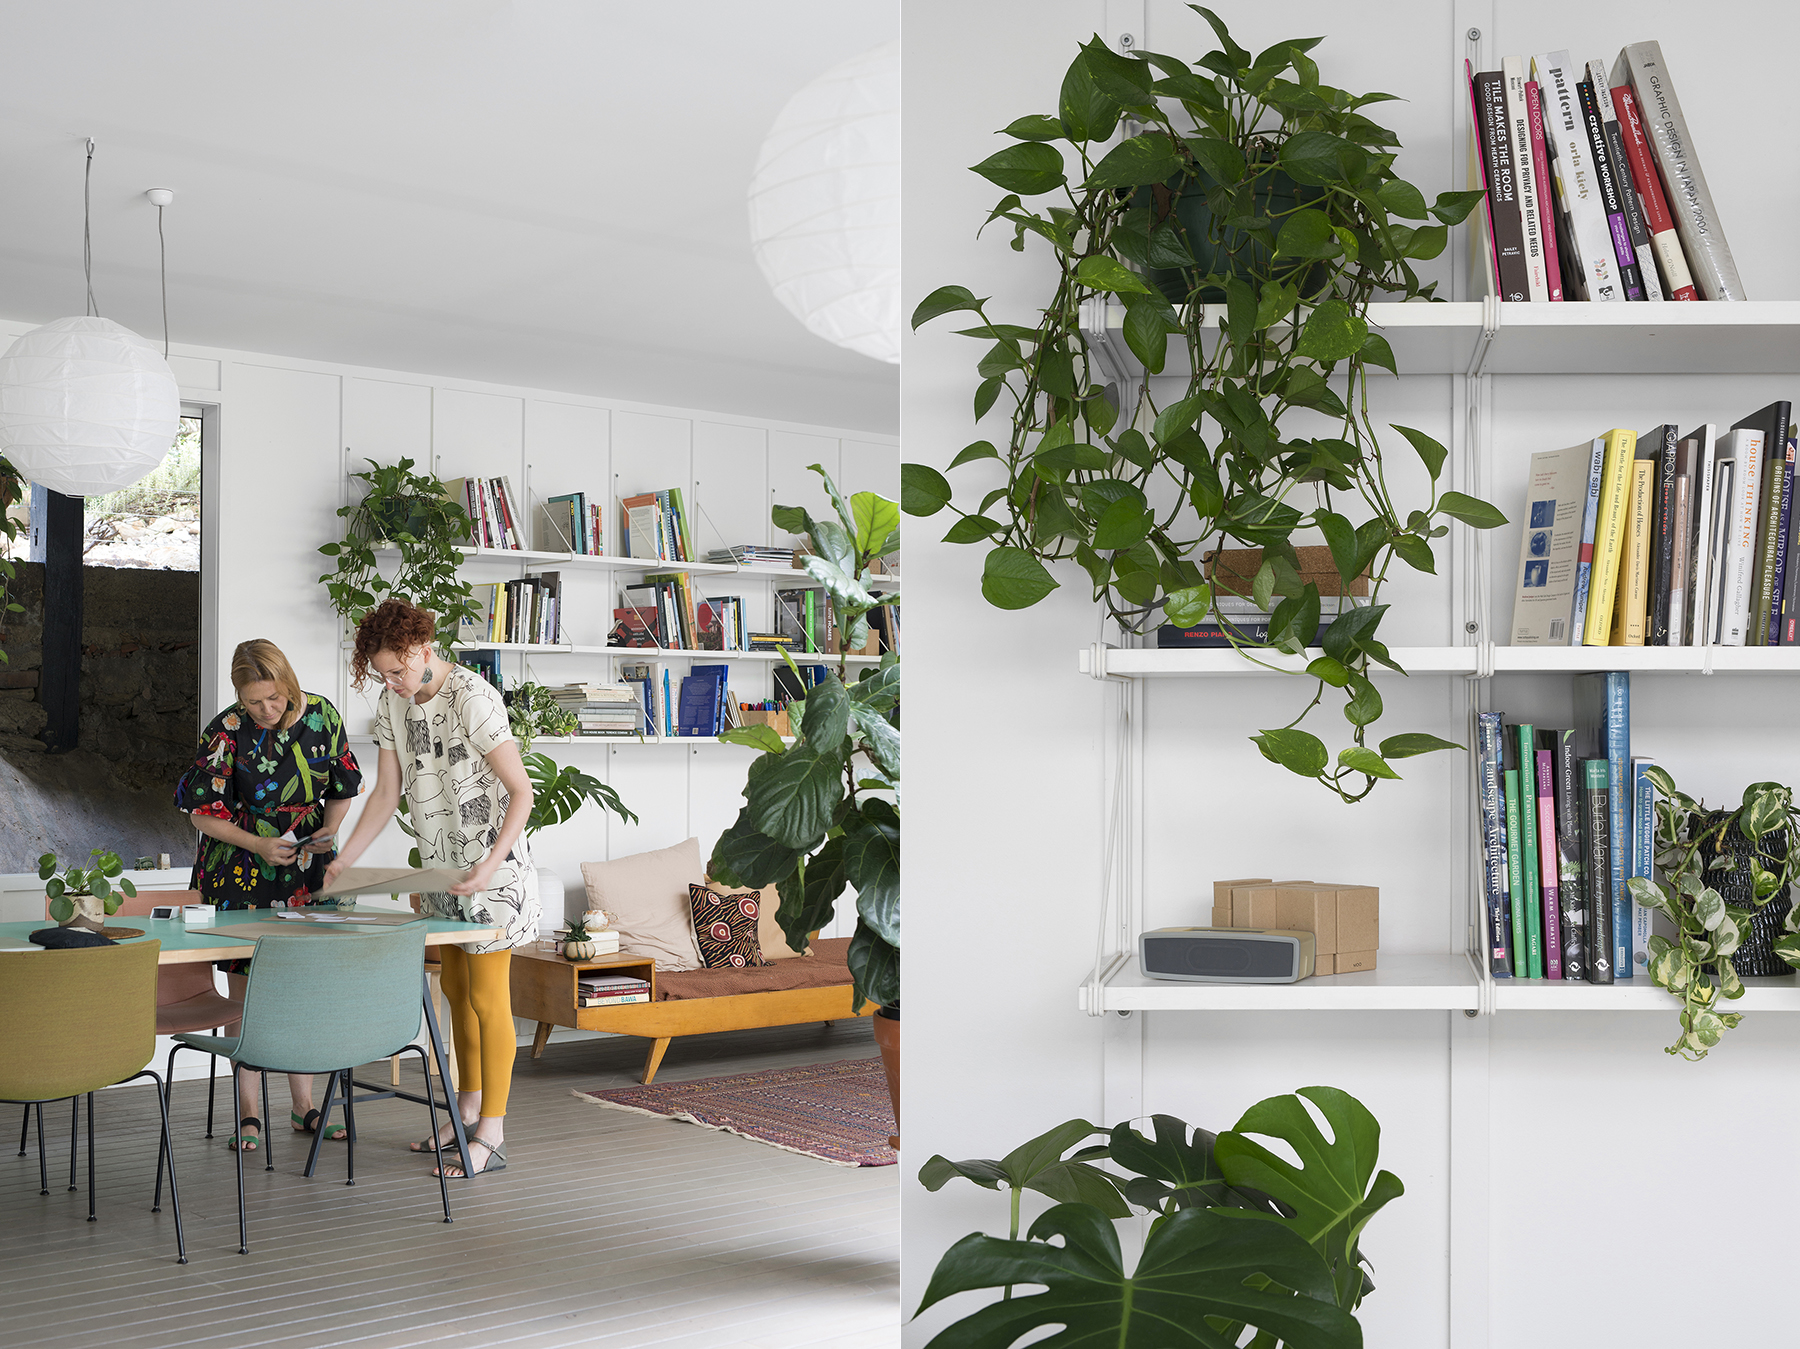 LEFT: Laura and Suzie in planning mode. RIGHT: Garden studio details.